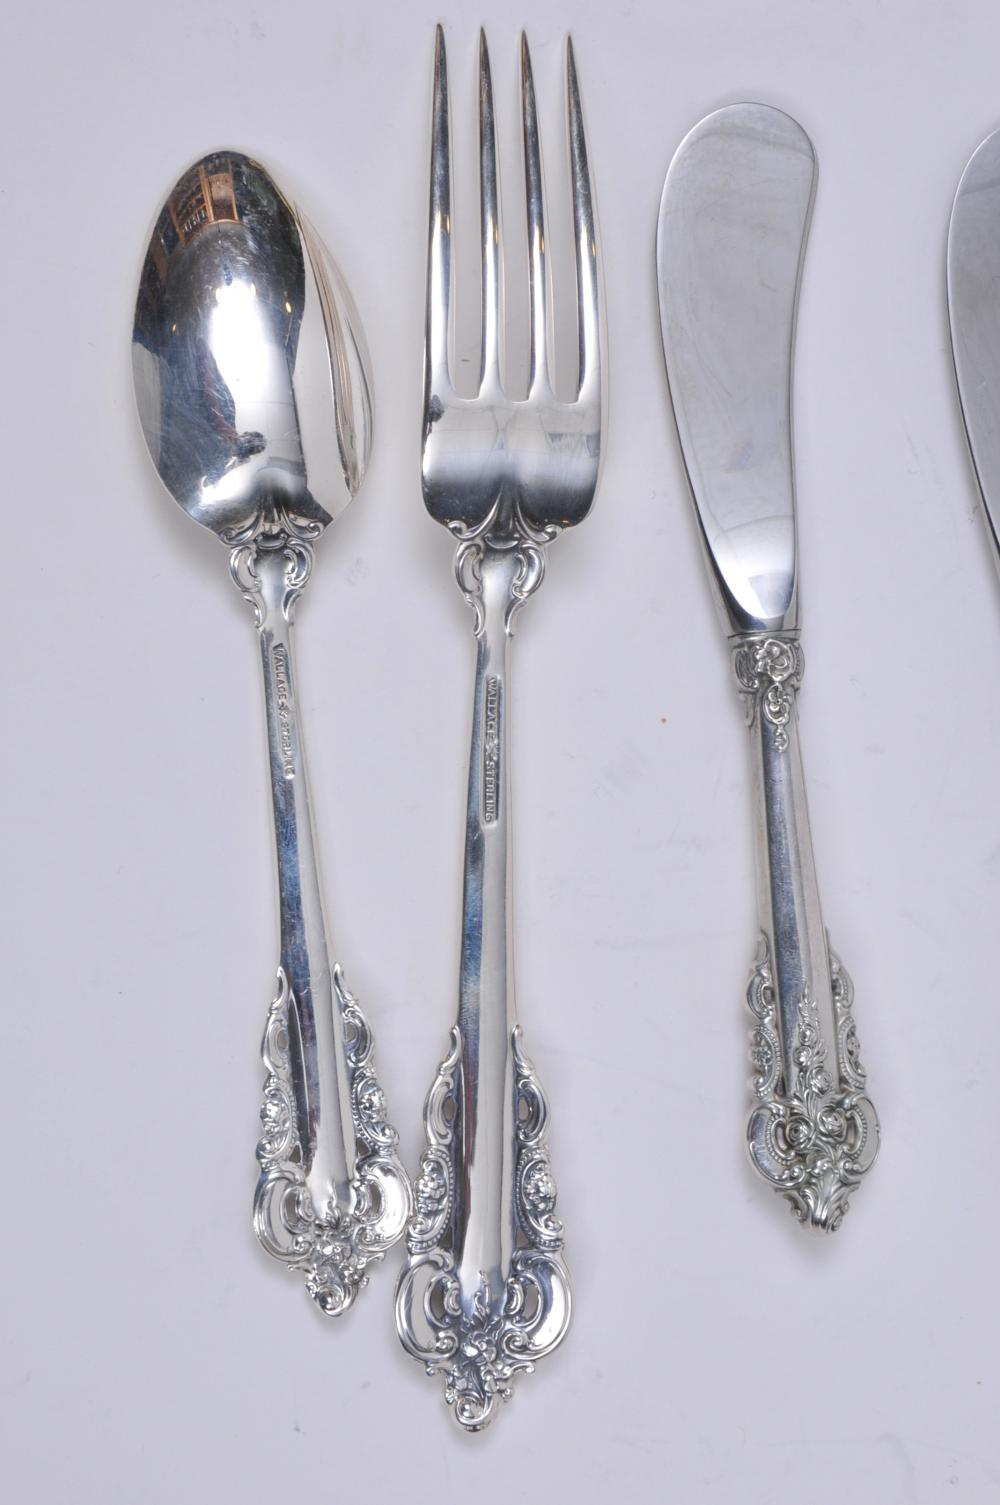 "Lot 230: Wallace ""Grand Baroque"" pattern sterling silver 38 piece flatware set. Includes: (8) forks- 7-1/2"". (8) forks- 6-1/2"". (8)teaspoons- 6-1/8"". (8) knives- 9"". (6) handled butter knives- 6"". Eight knife handles at 1. ozt each. Six knife handles at 1/3"